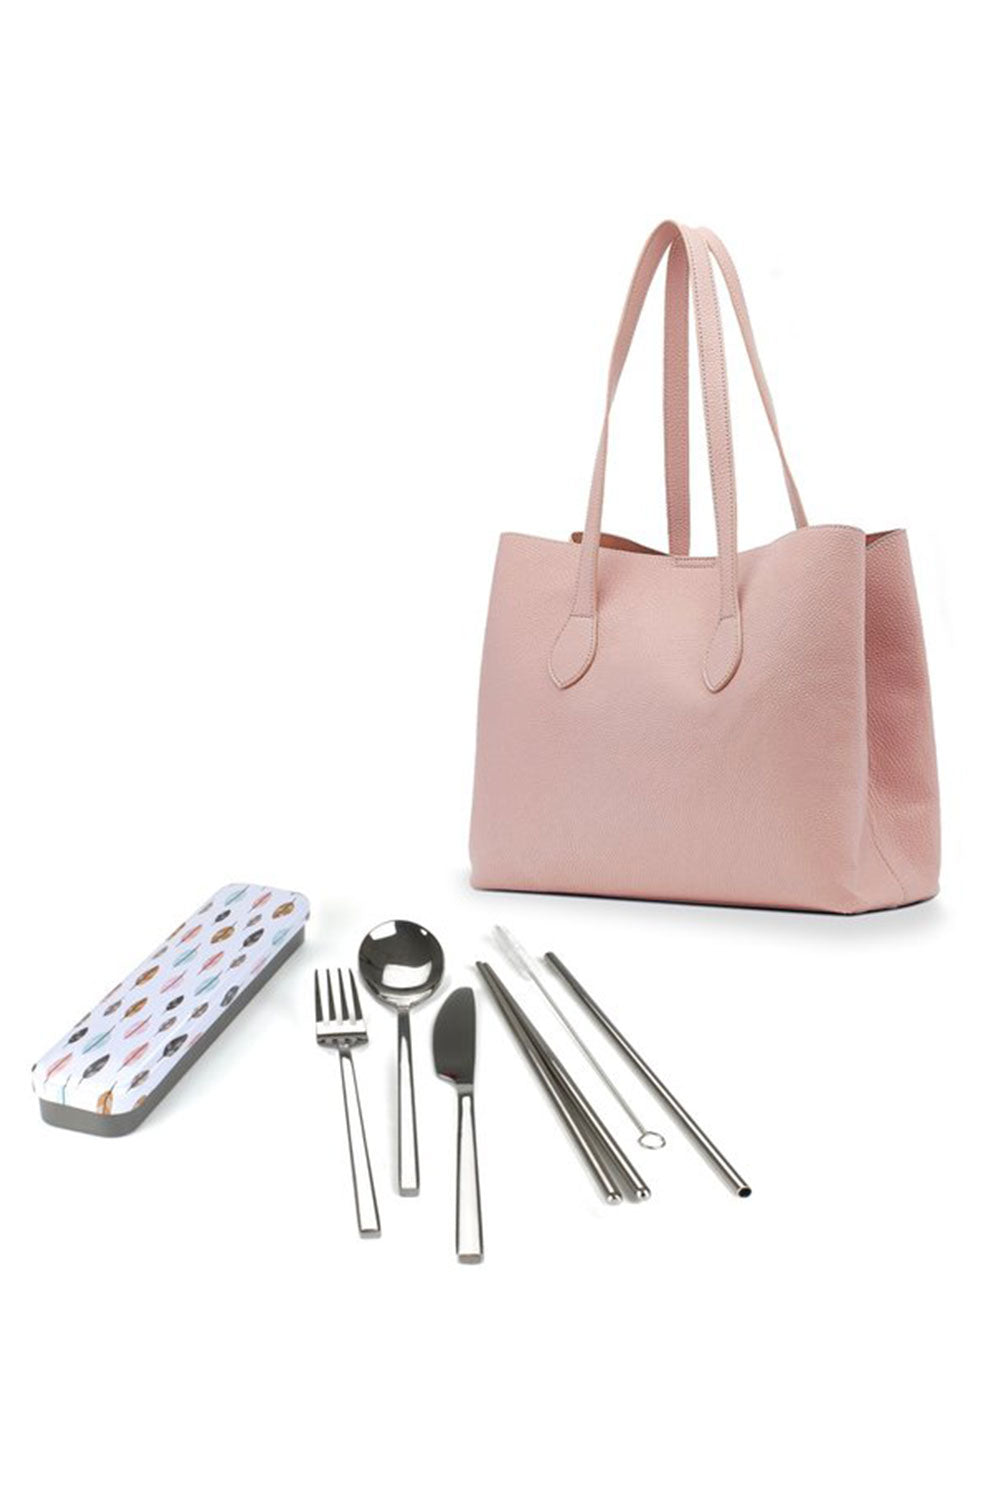 Carry Your Cutlery Leaves - Kabana Shop